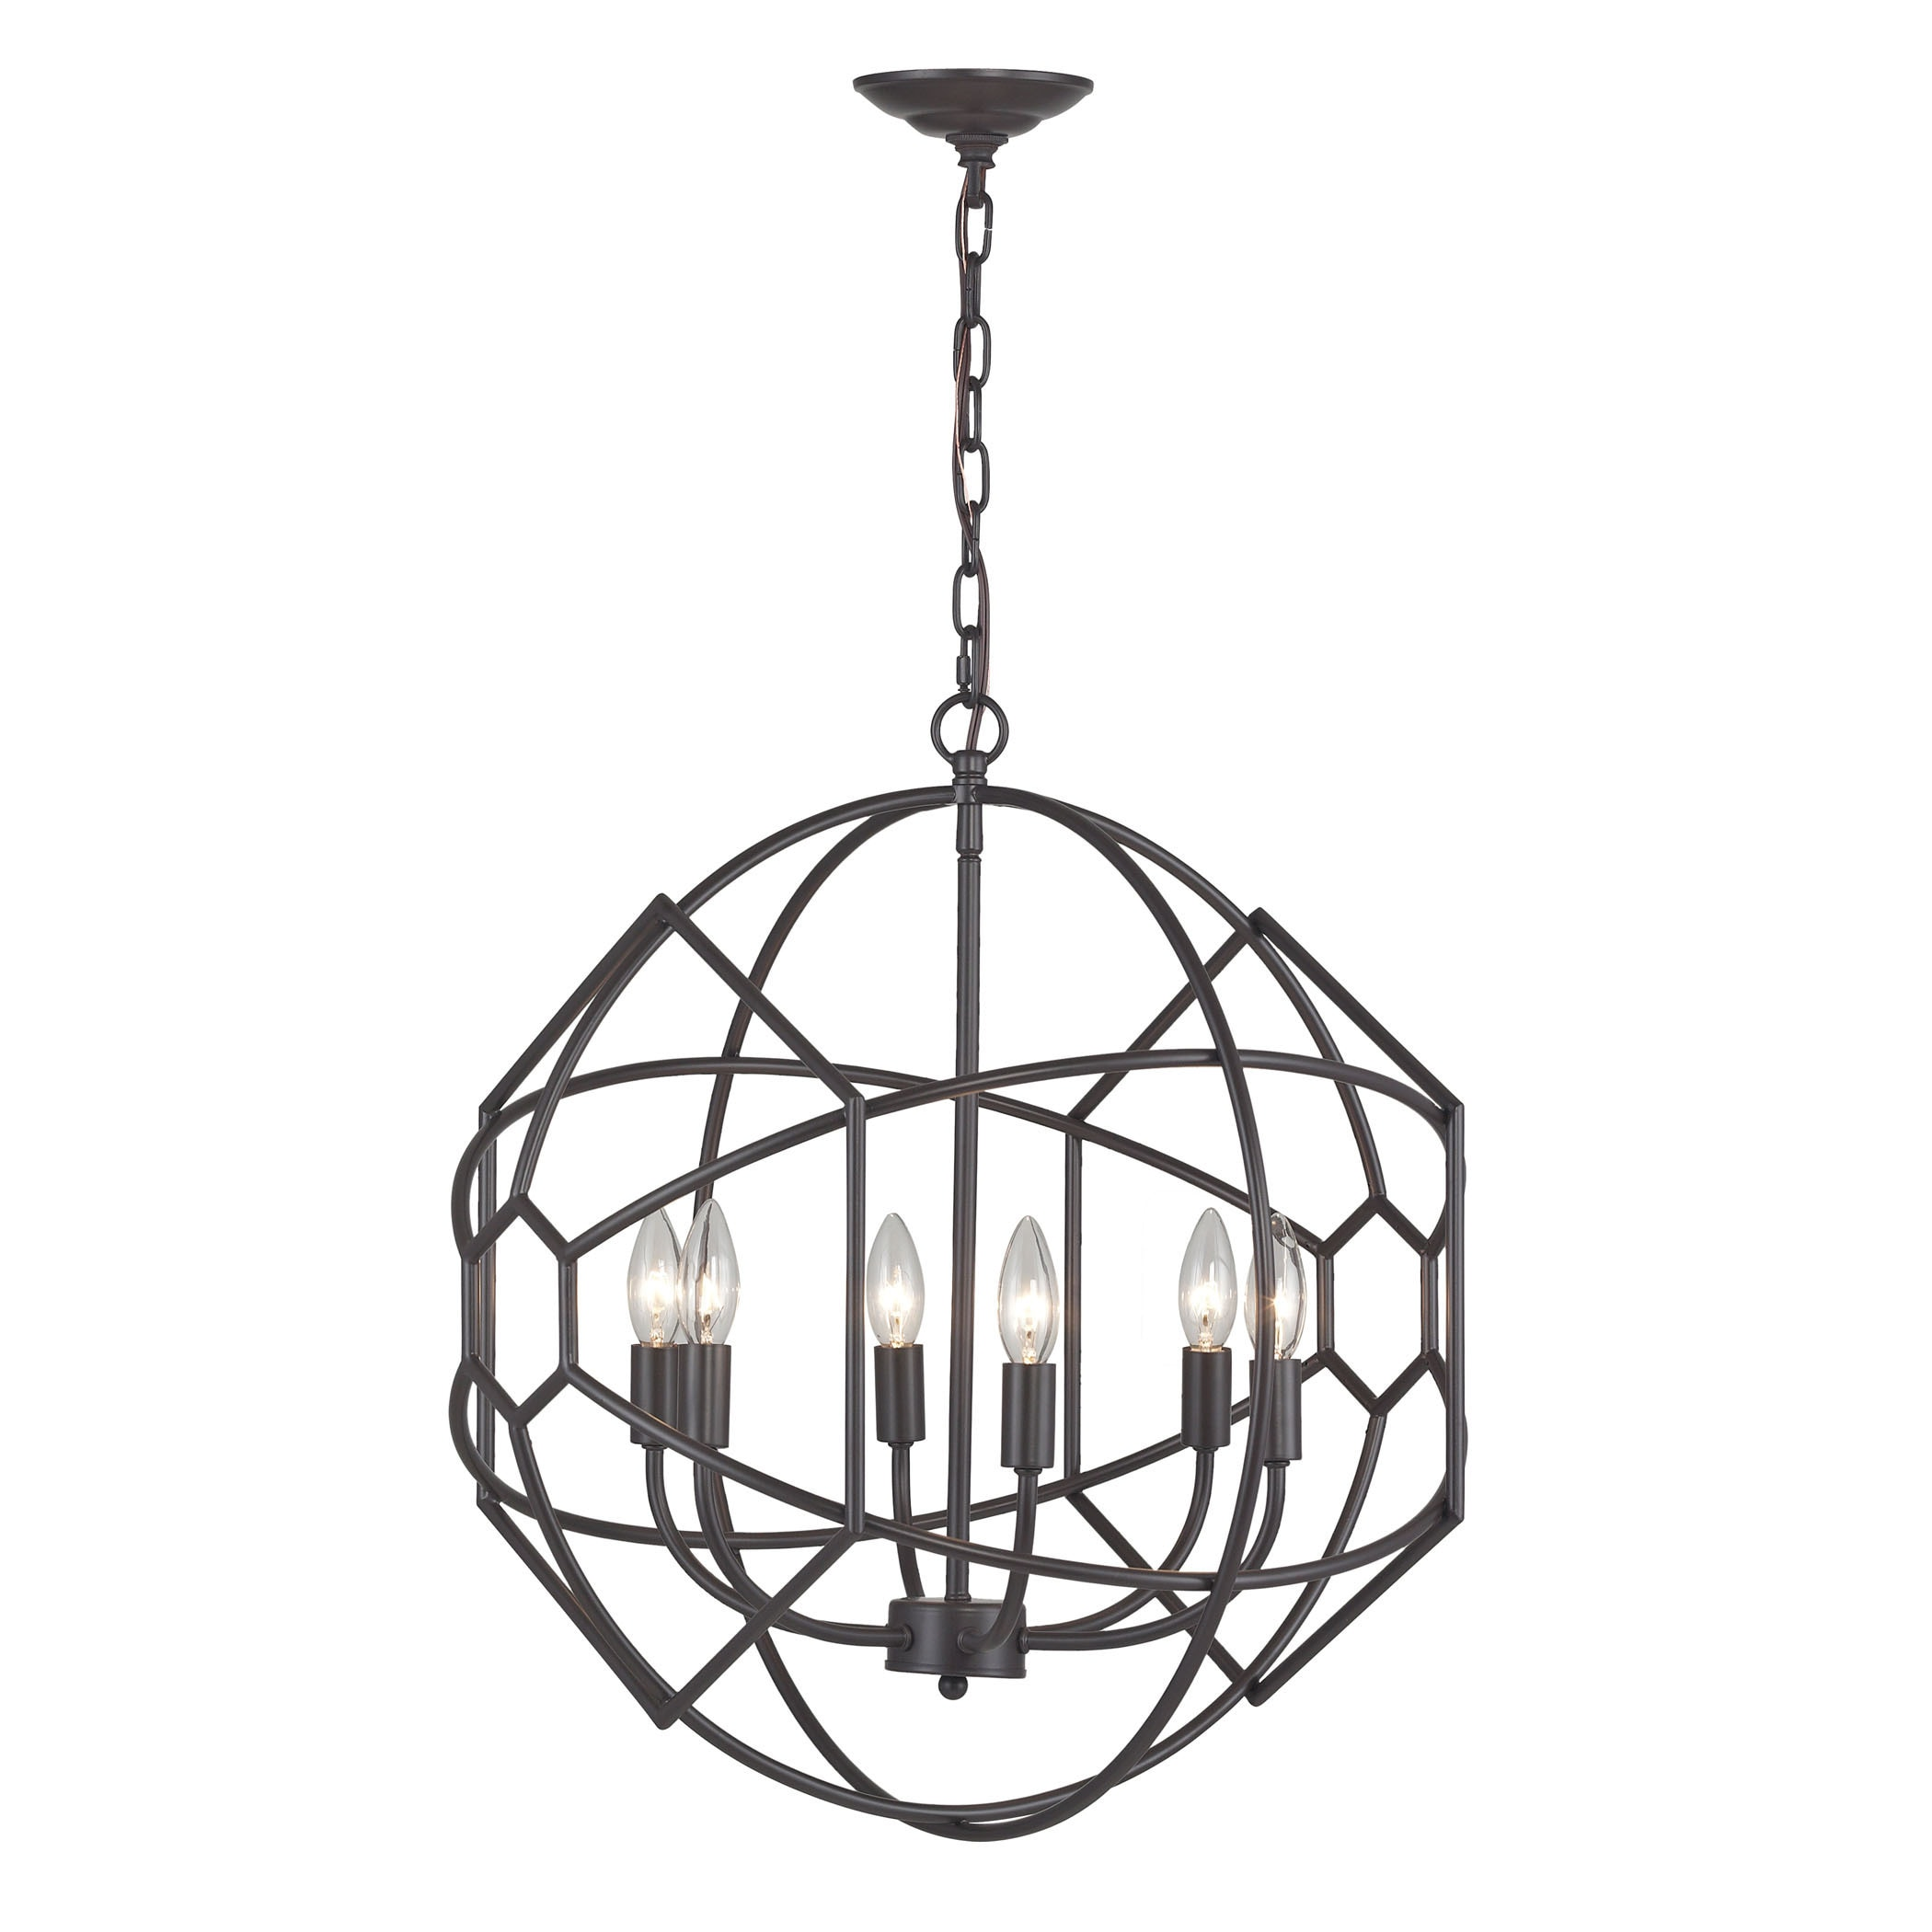 Sterling Strathroy 6 light Orb Chandelier With Honey b Metal